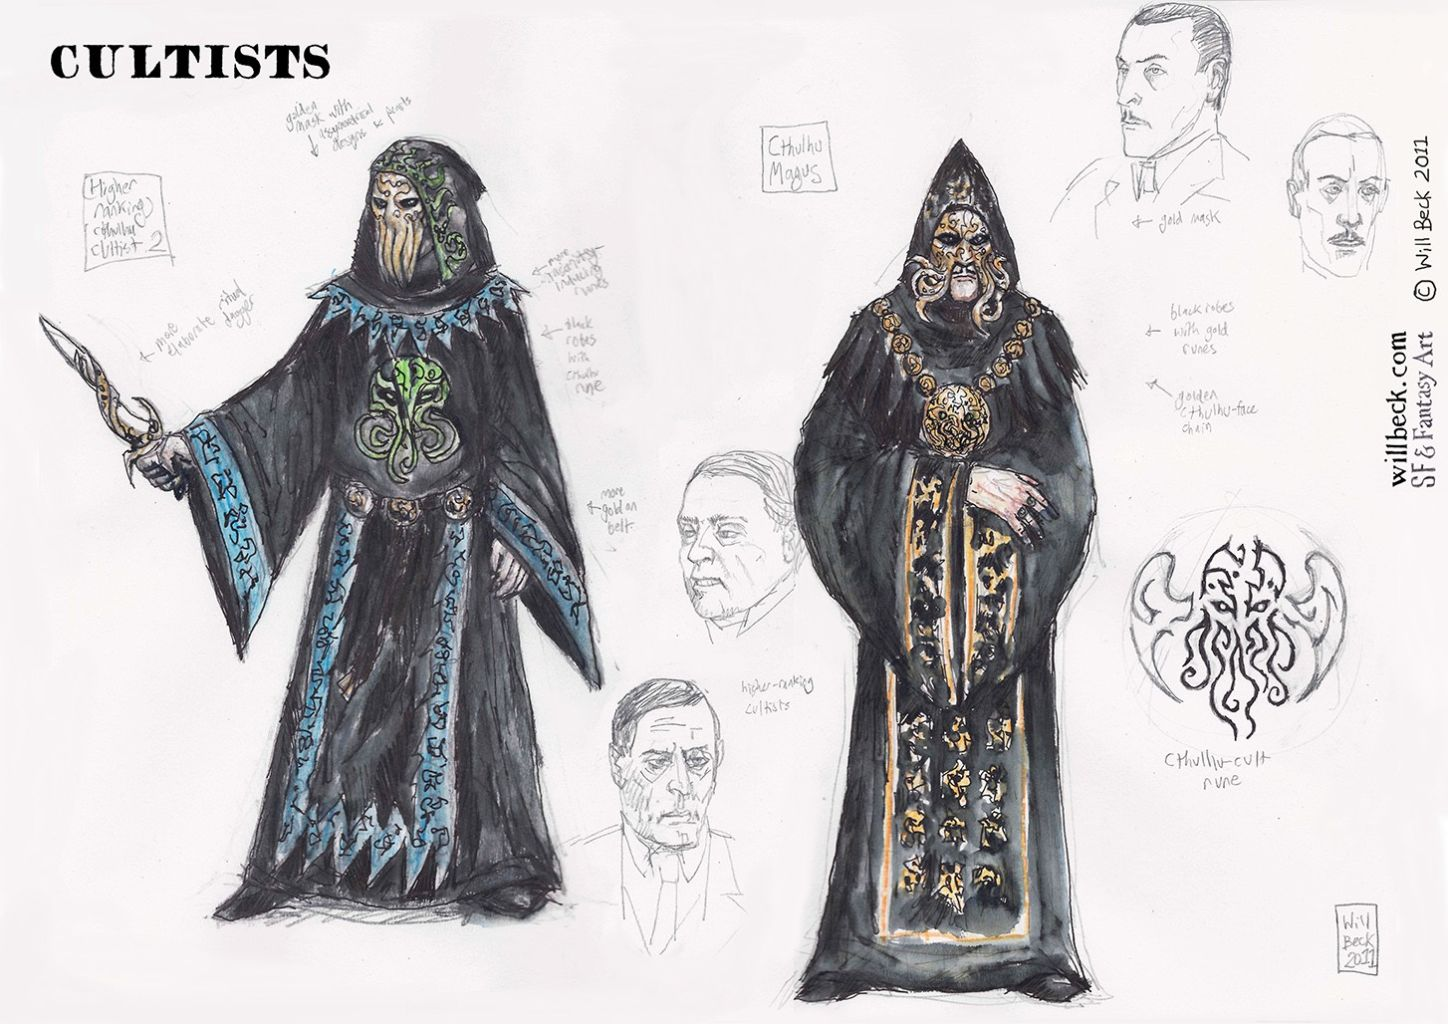 Call of Cthulhu high-ranking cultist and cult leader